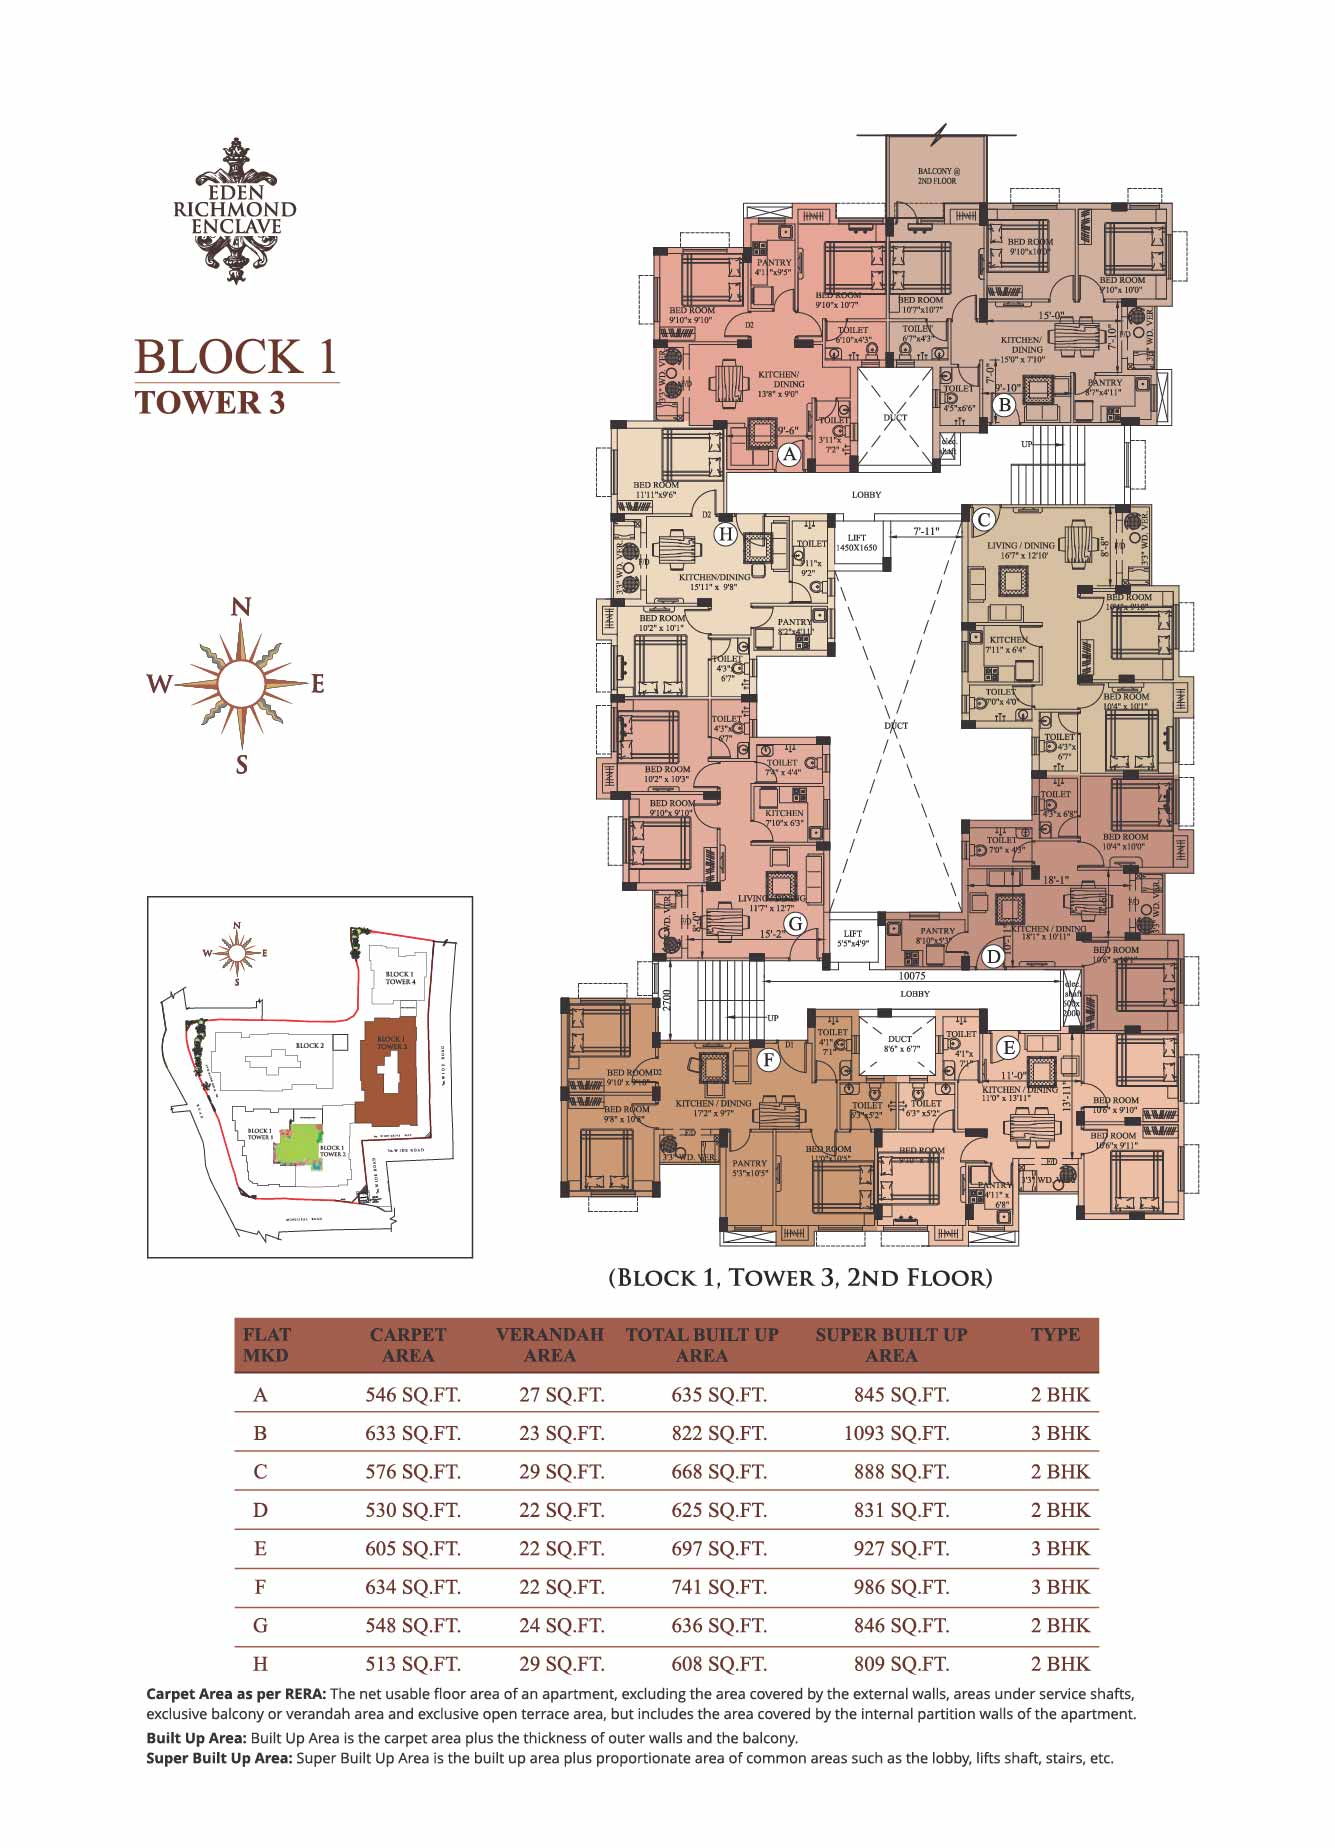 Block 1 Tower 3, 2nd Floor